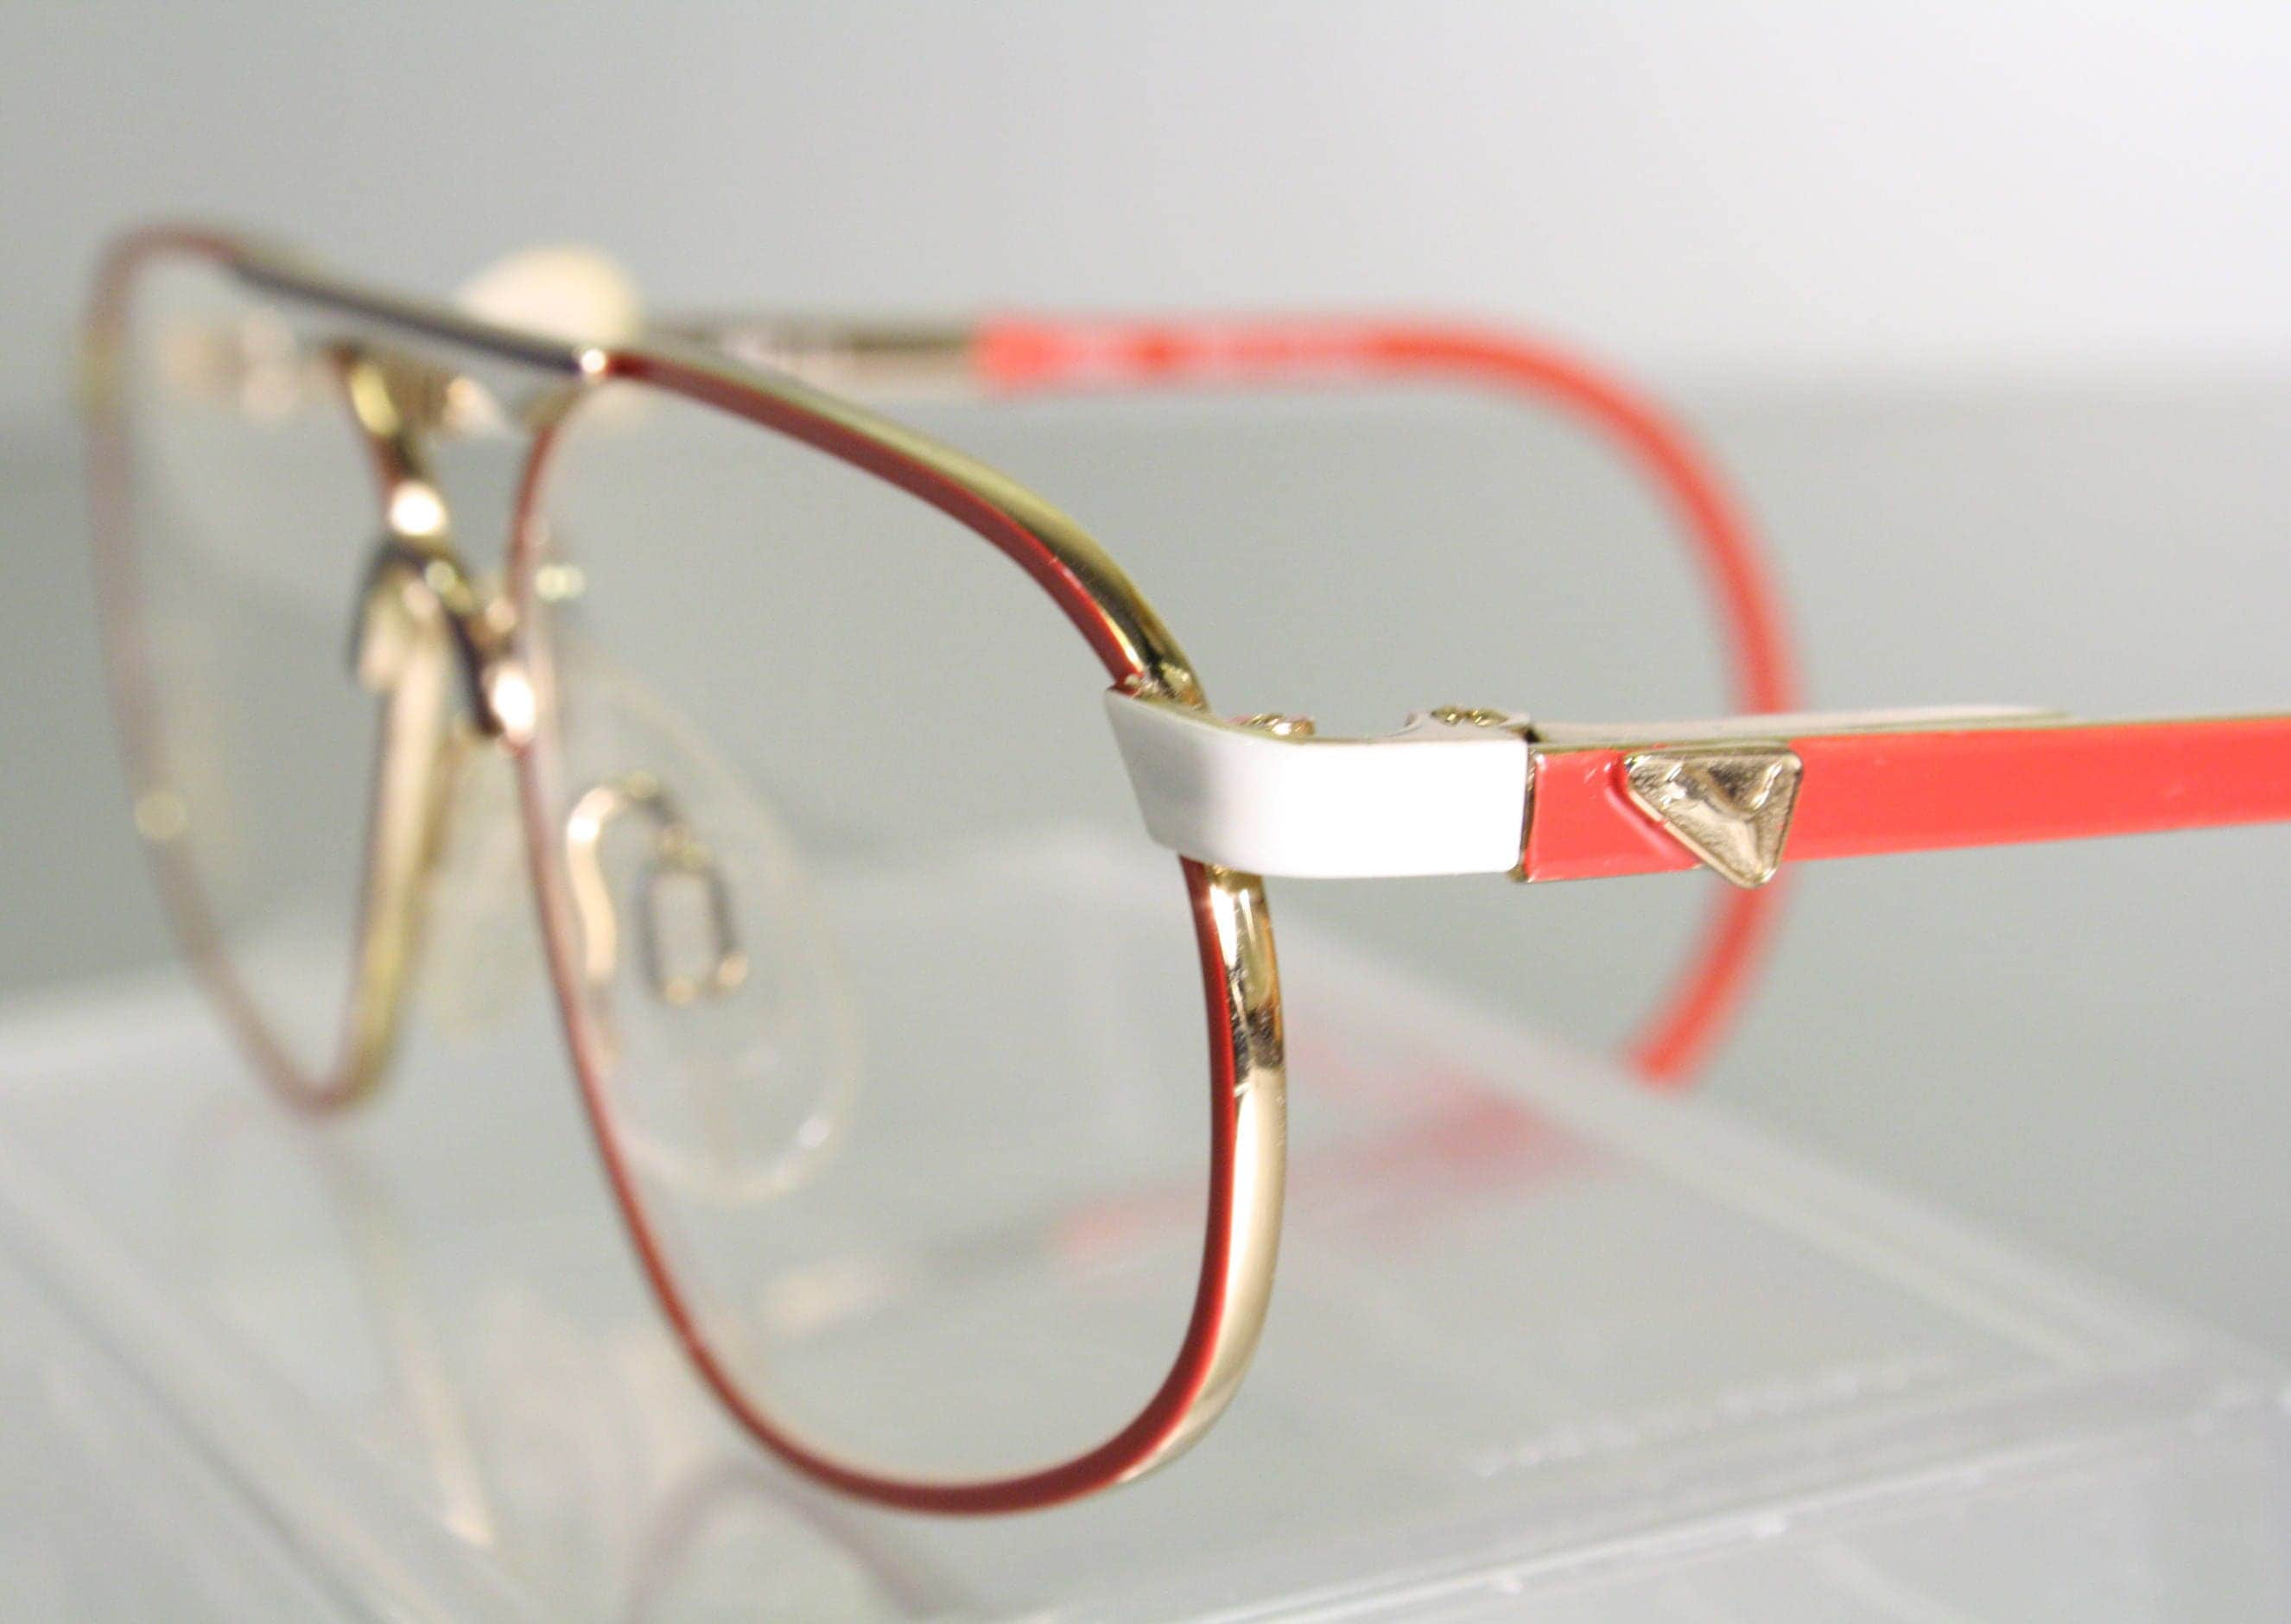 d069f637652a Kid's Unworn PUMA Cable Temple Ear Loop Vintage Early 90's Aviator Red  White Gold Eyeglass Frames